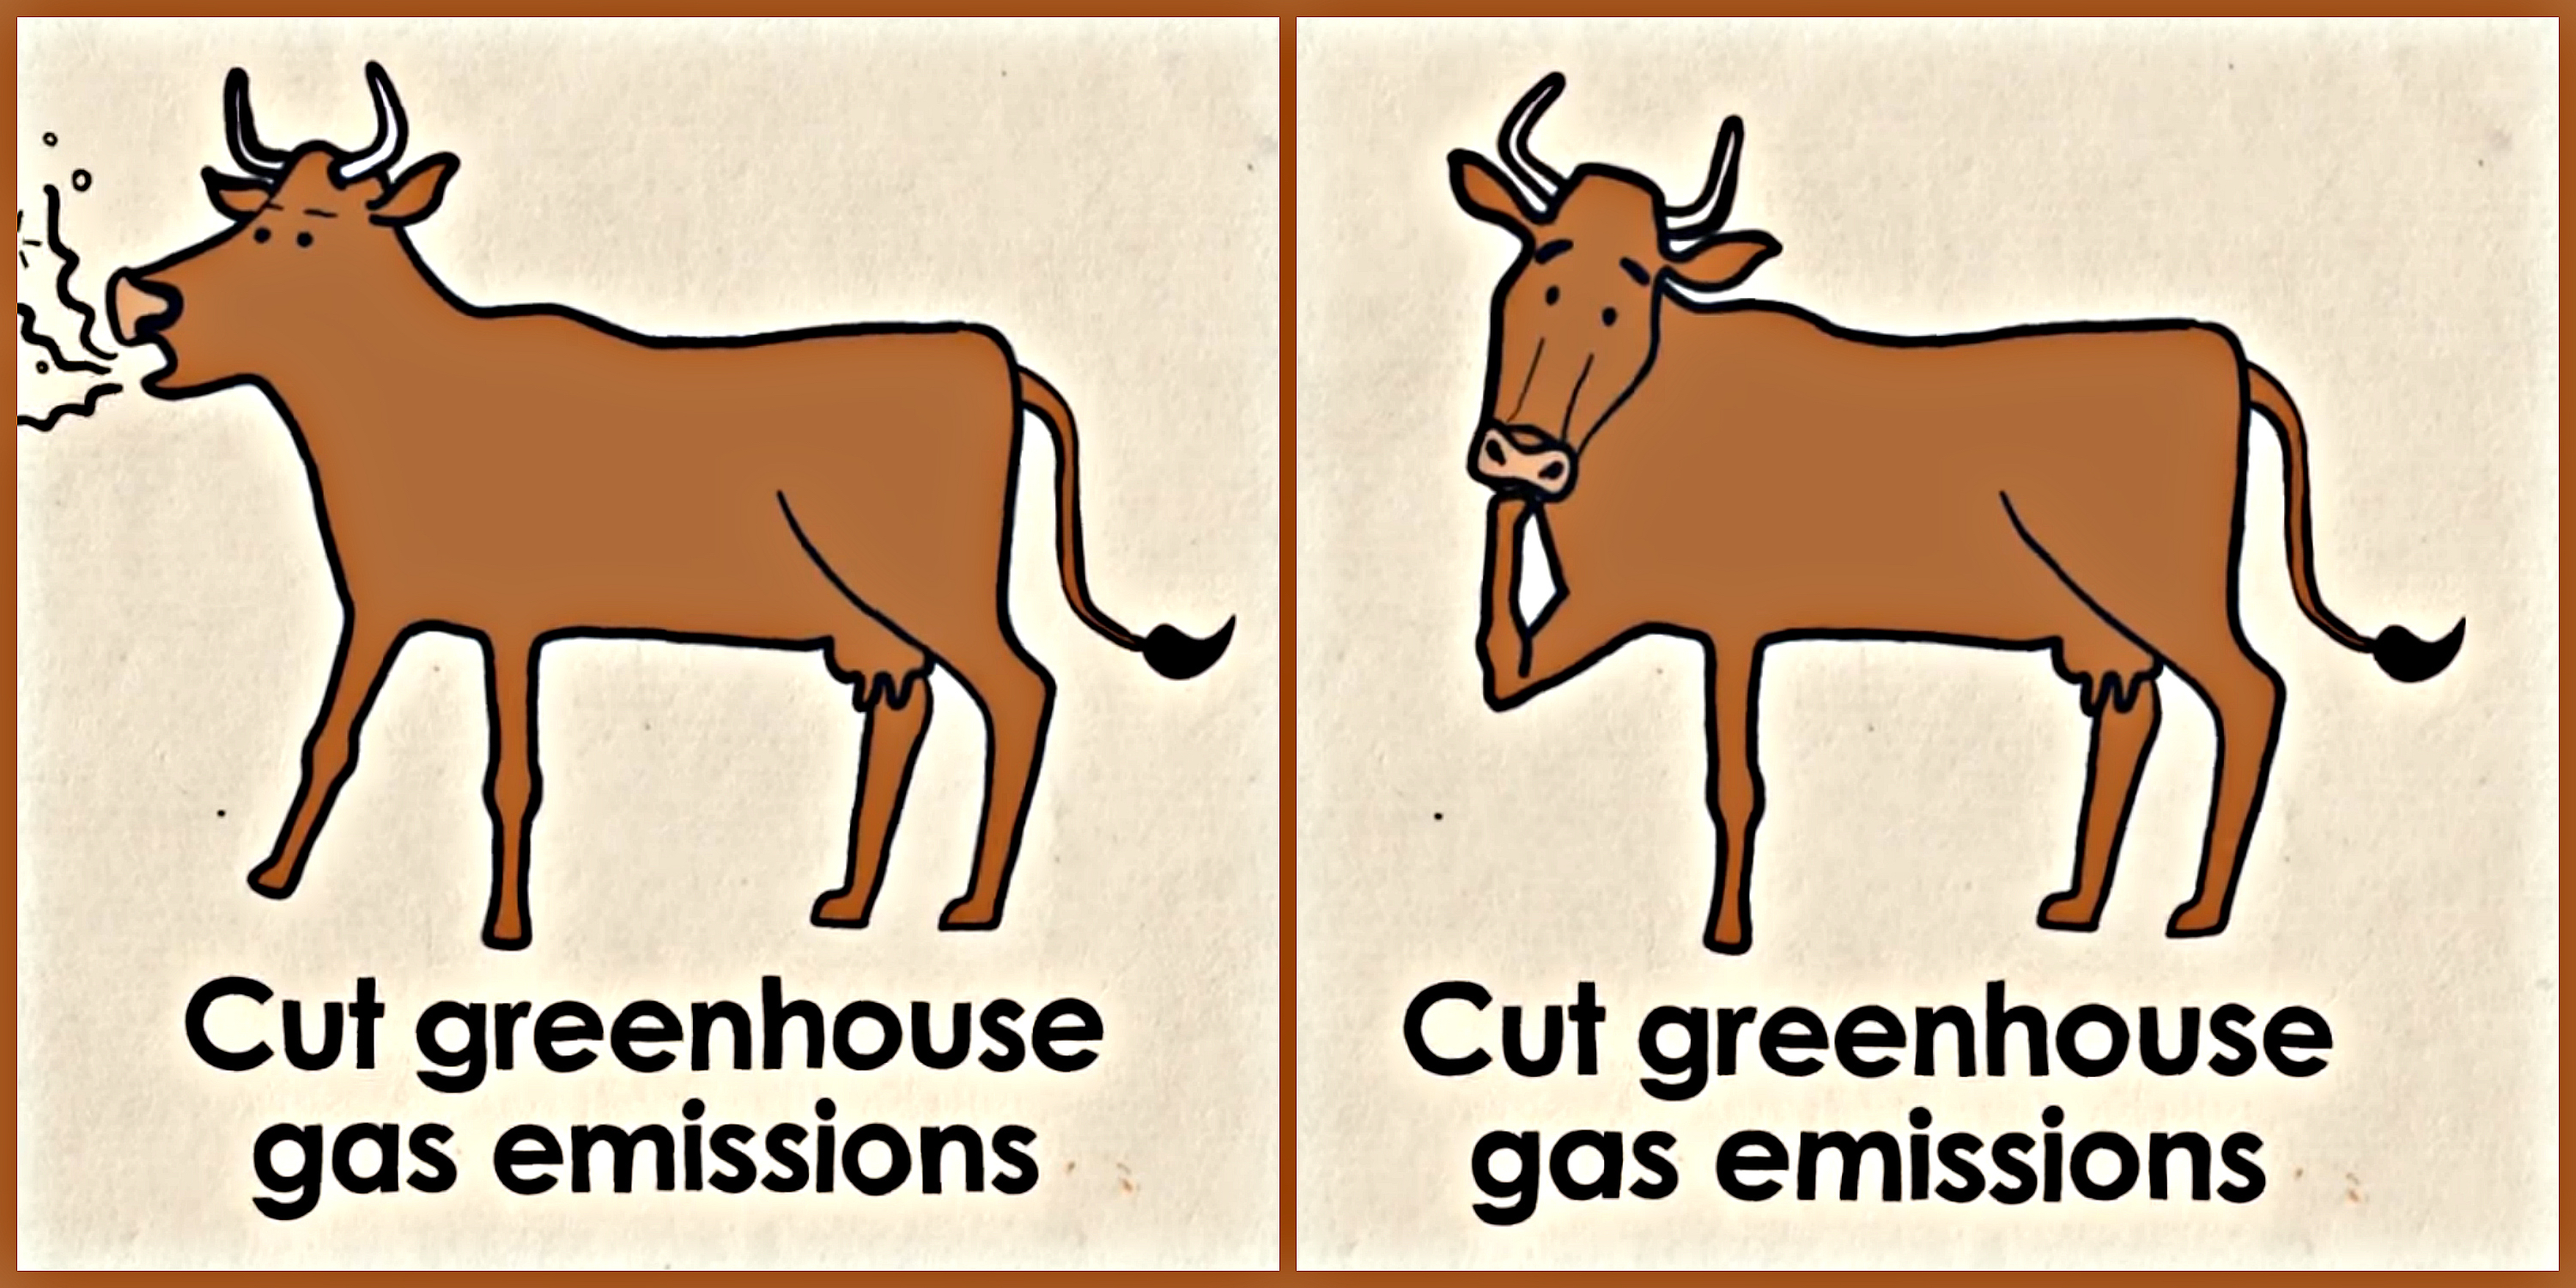 Enteric methane) greenhouse gas emissions in cows are cut 25% with feed  supplement (3-NOP)   International Livestock Research Institute